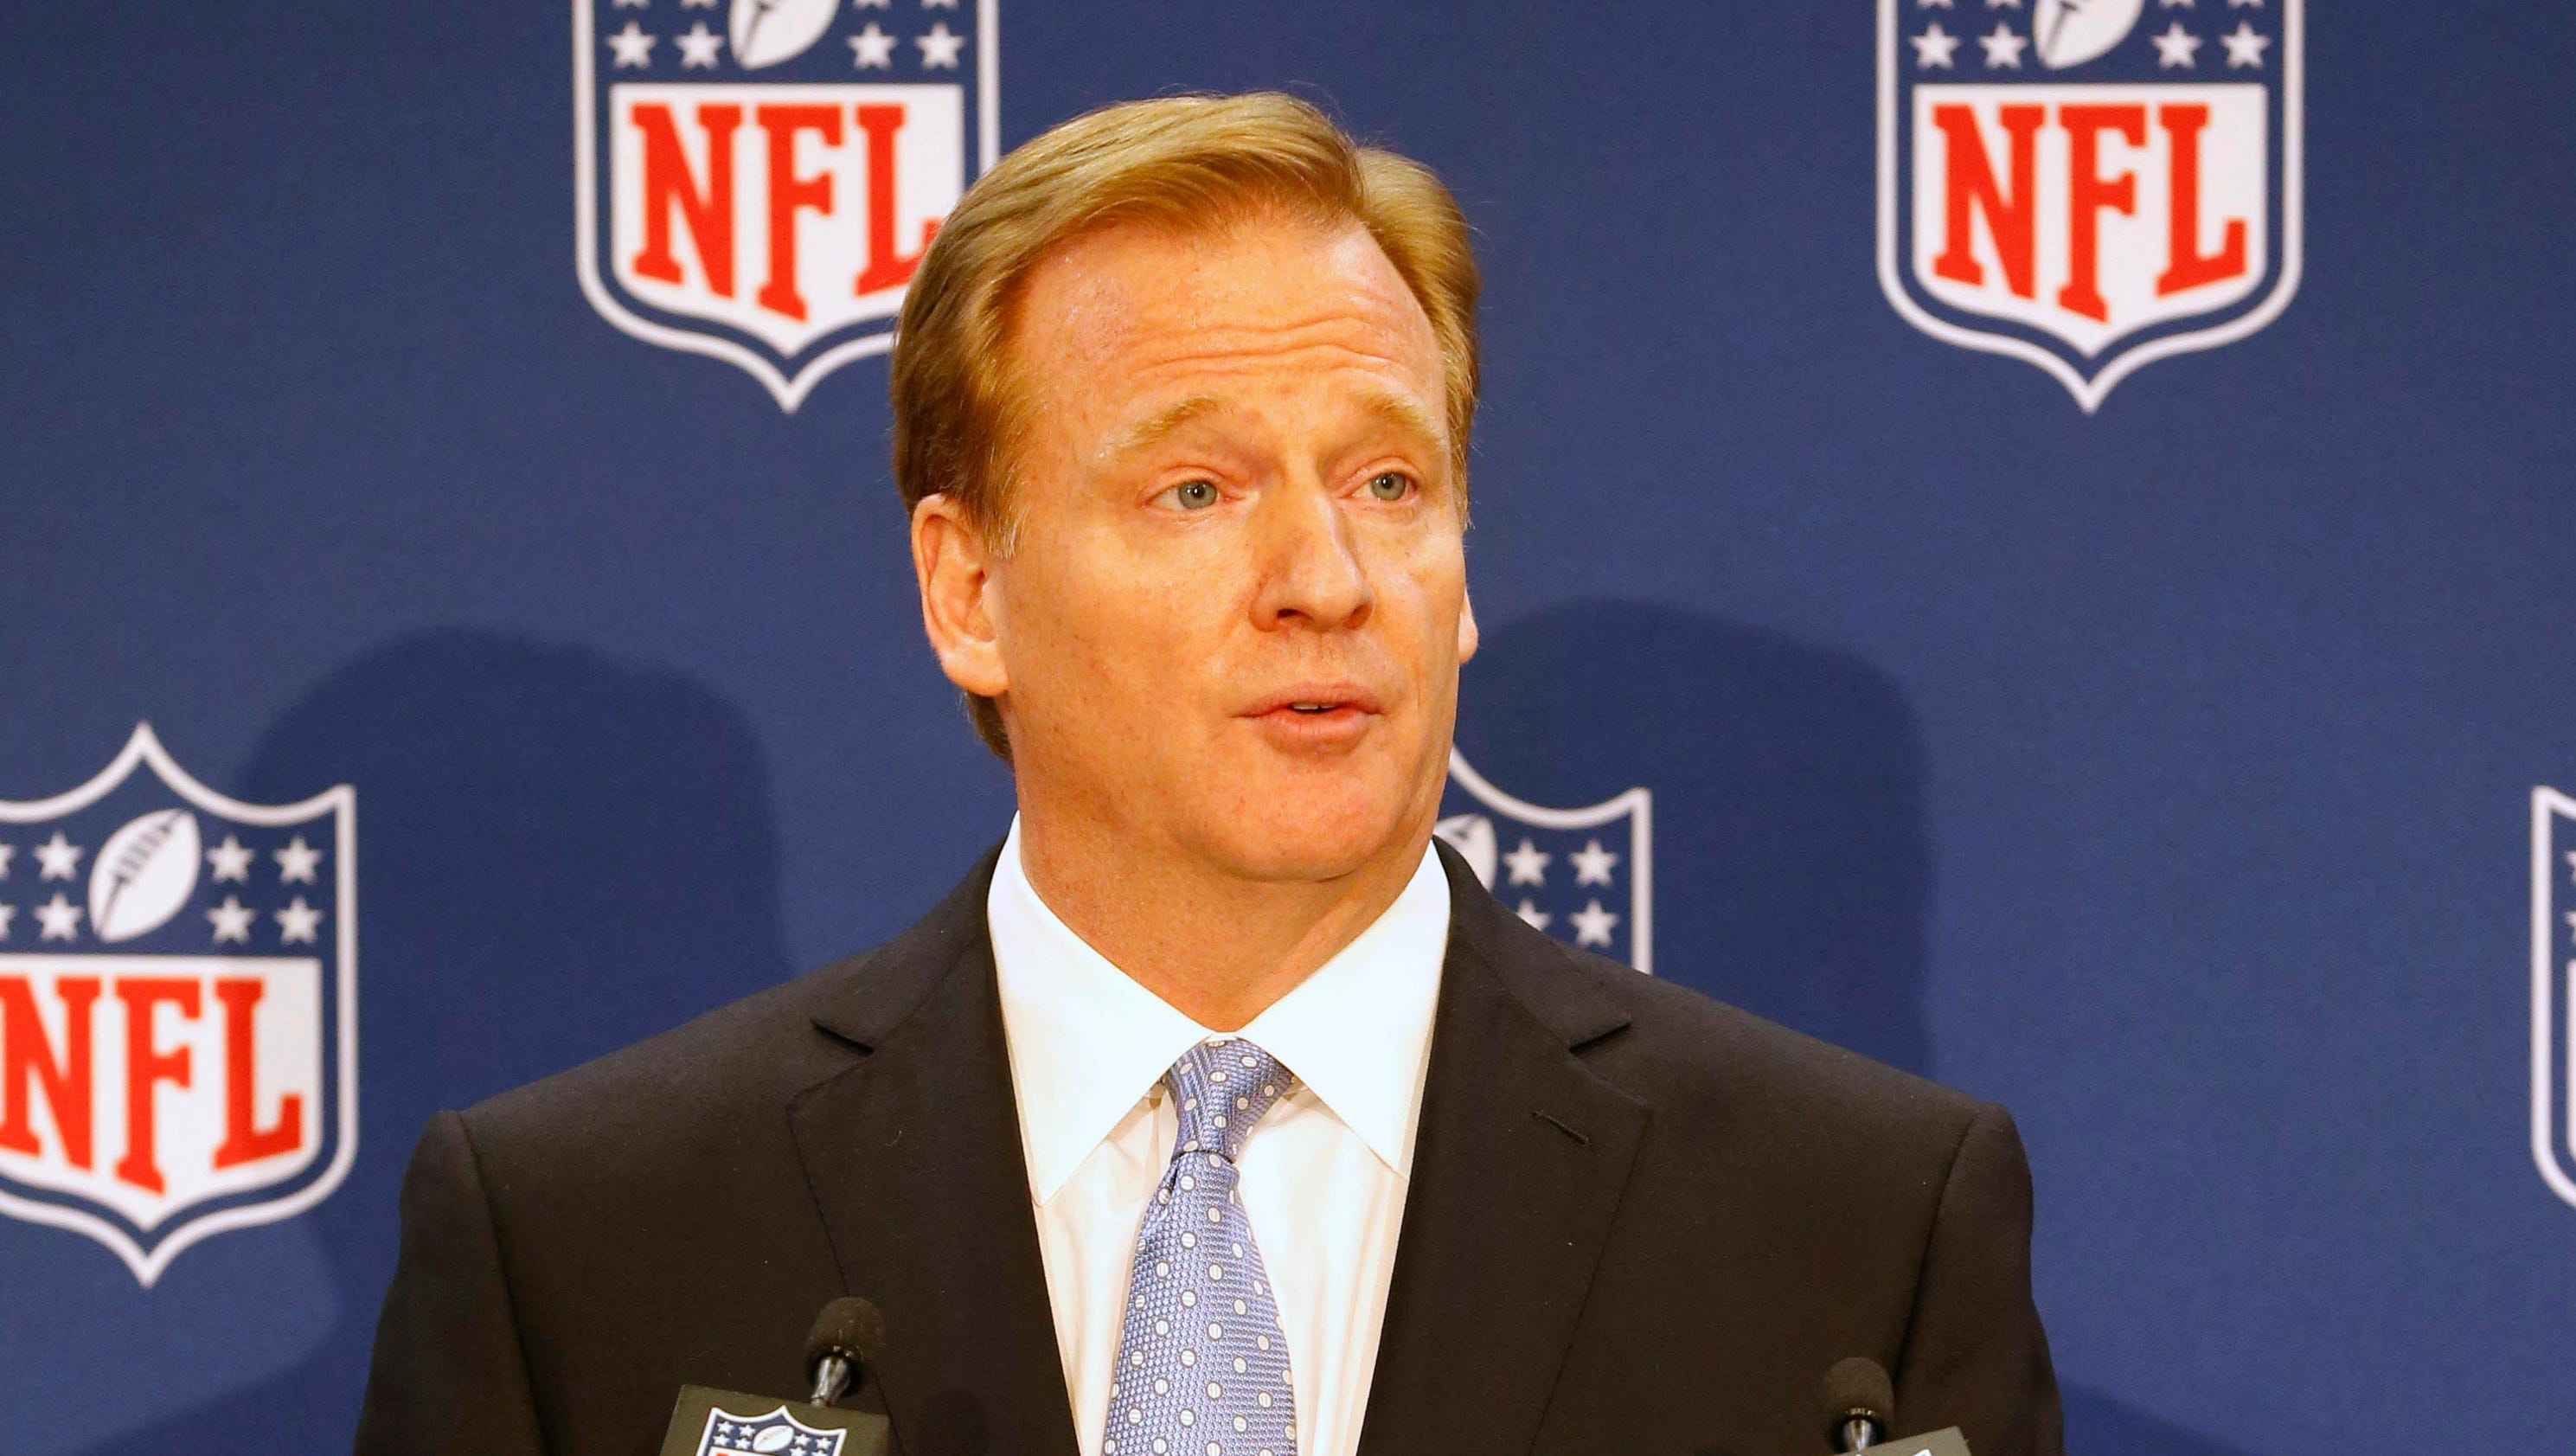 goodell chat sites Nfl commissioner roger goodell surprised bill duggan, a tarrytown firefighter  battling brain cancer, with super bowl tickets see if on video.